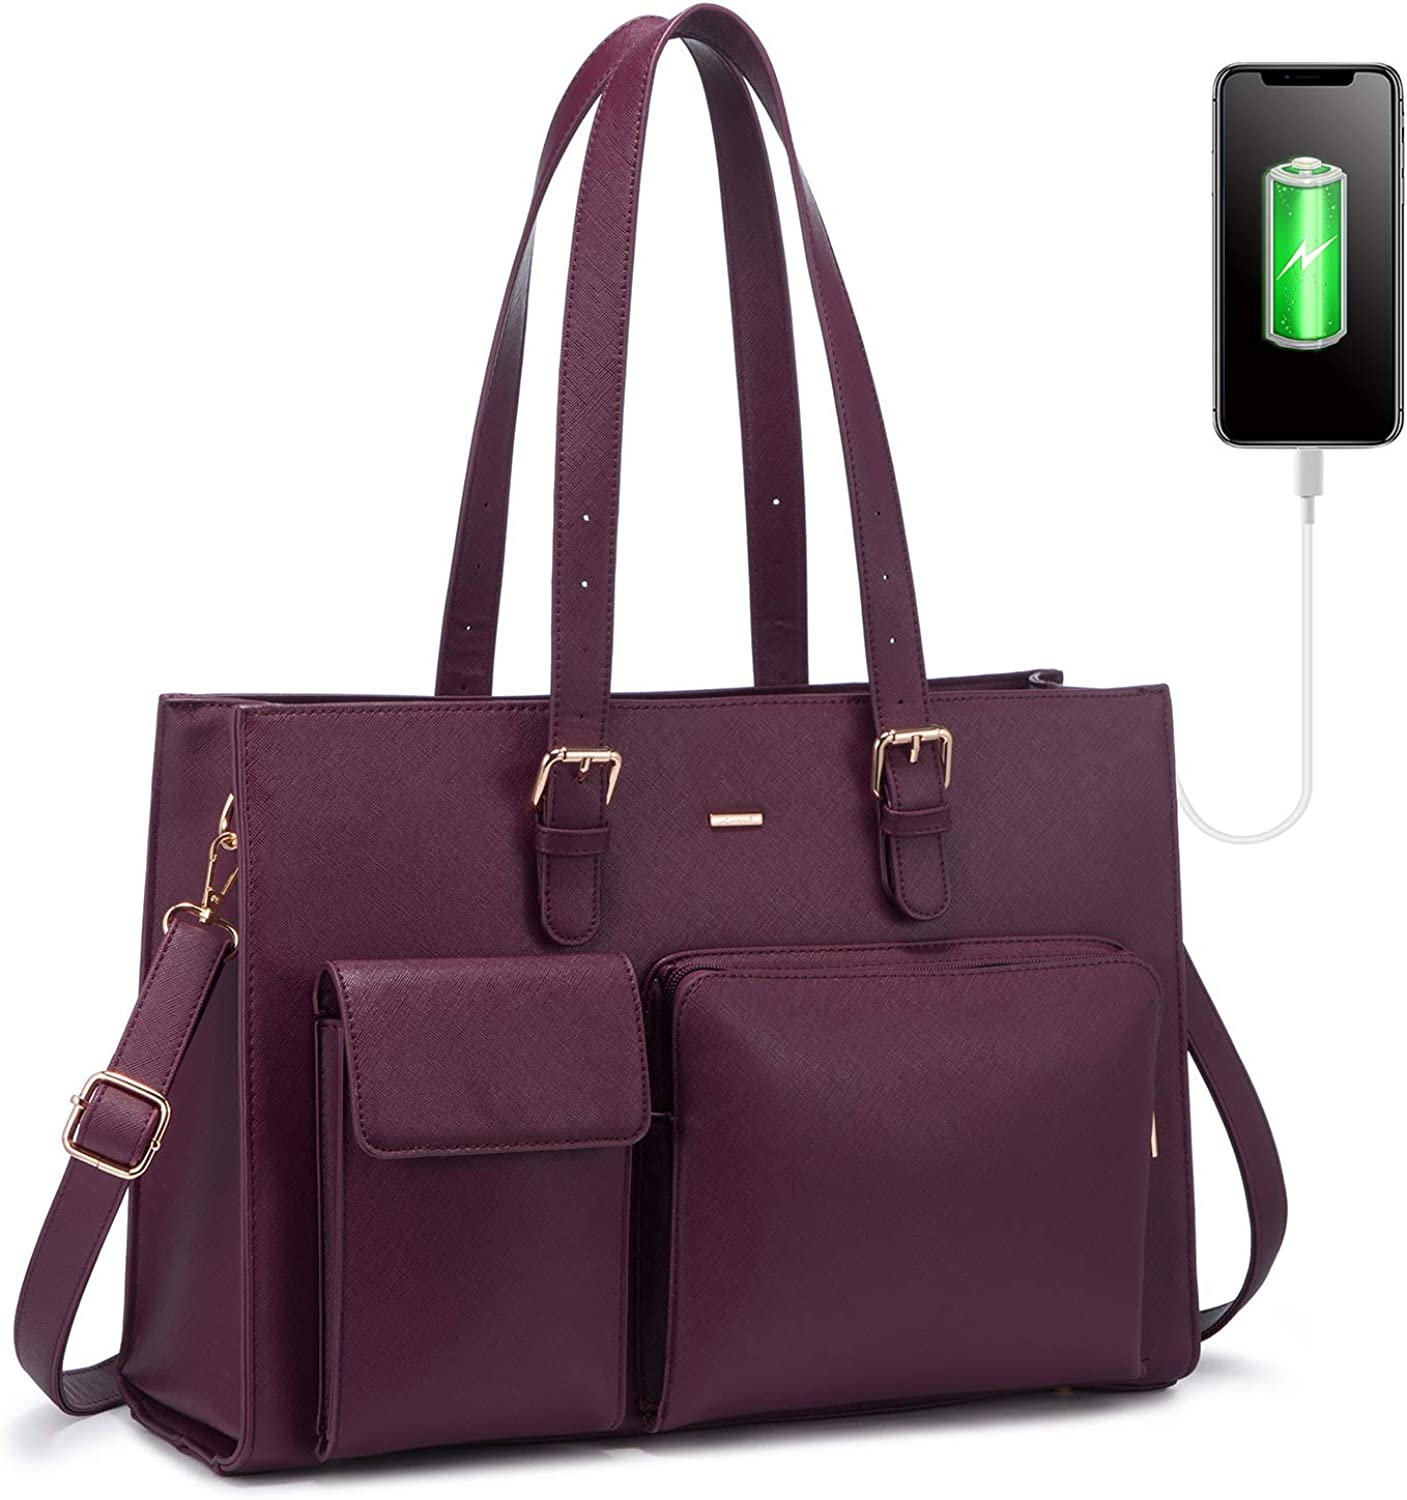 Direct stock discount Laptop Bag for Women 15.6 Waterproof Inch W Leather Ranking TOP15 Computer